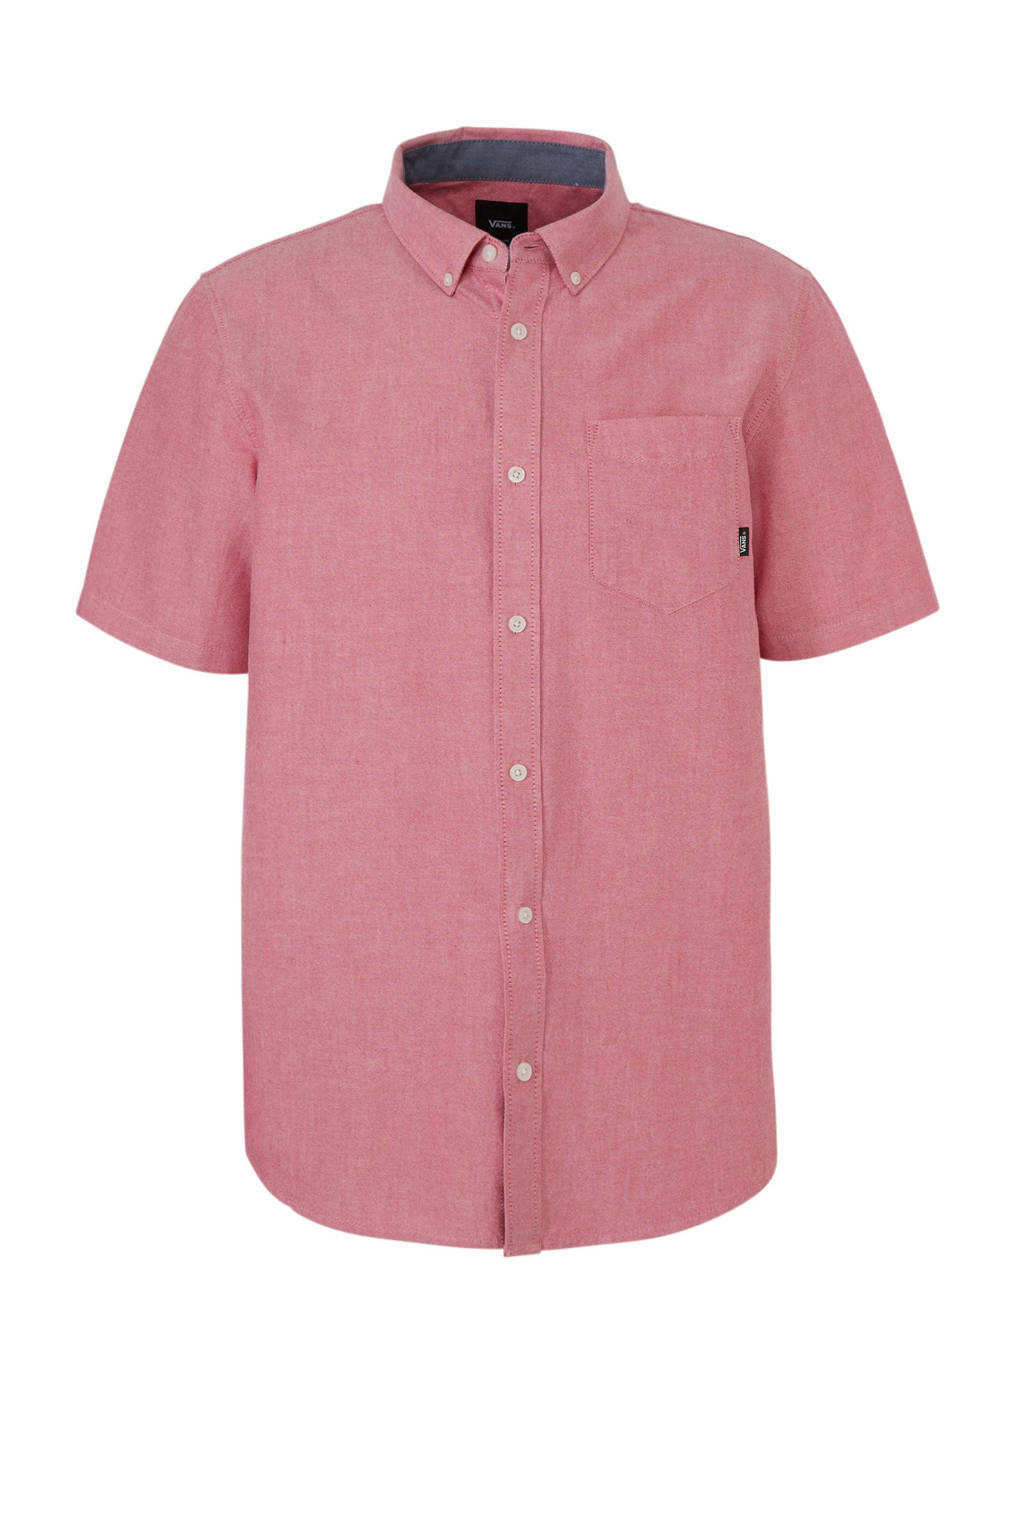 VANS regular fit overhemd roze, Roze